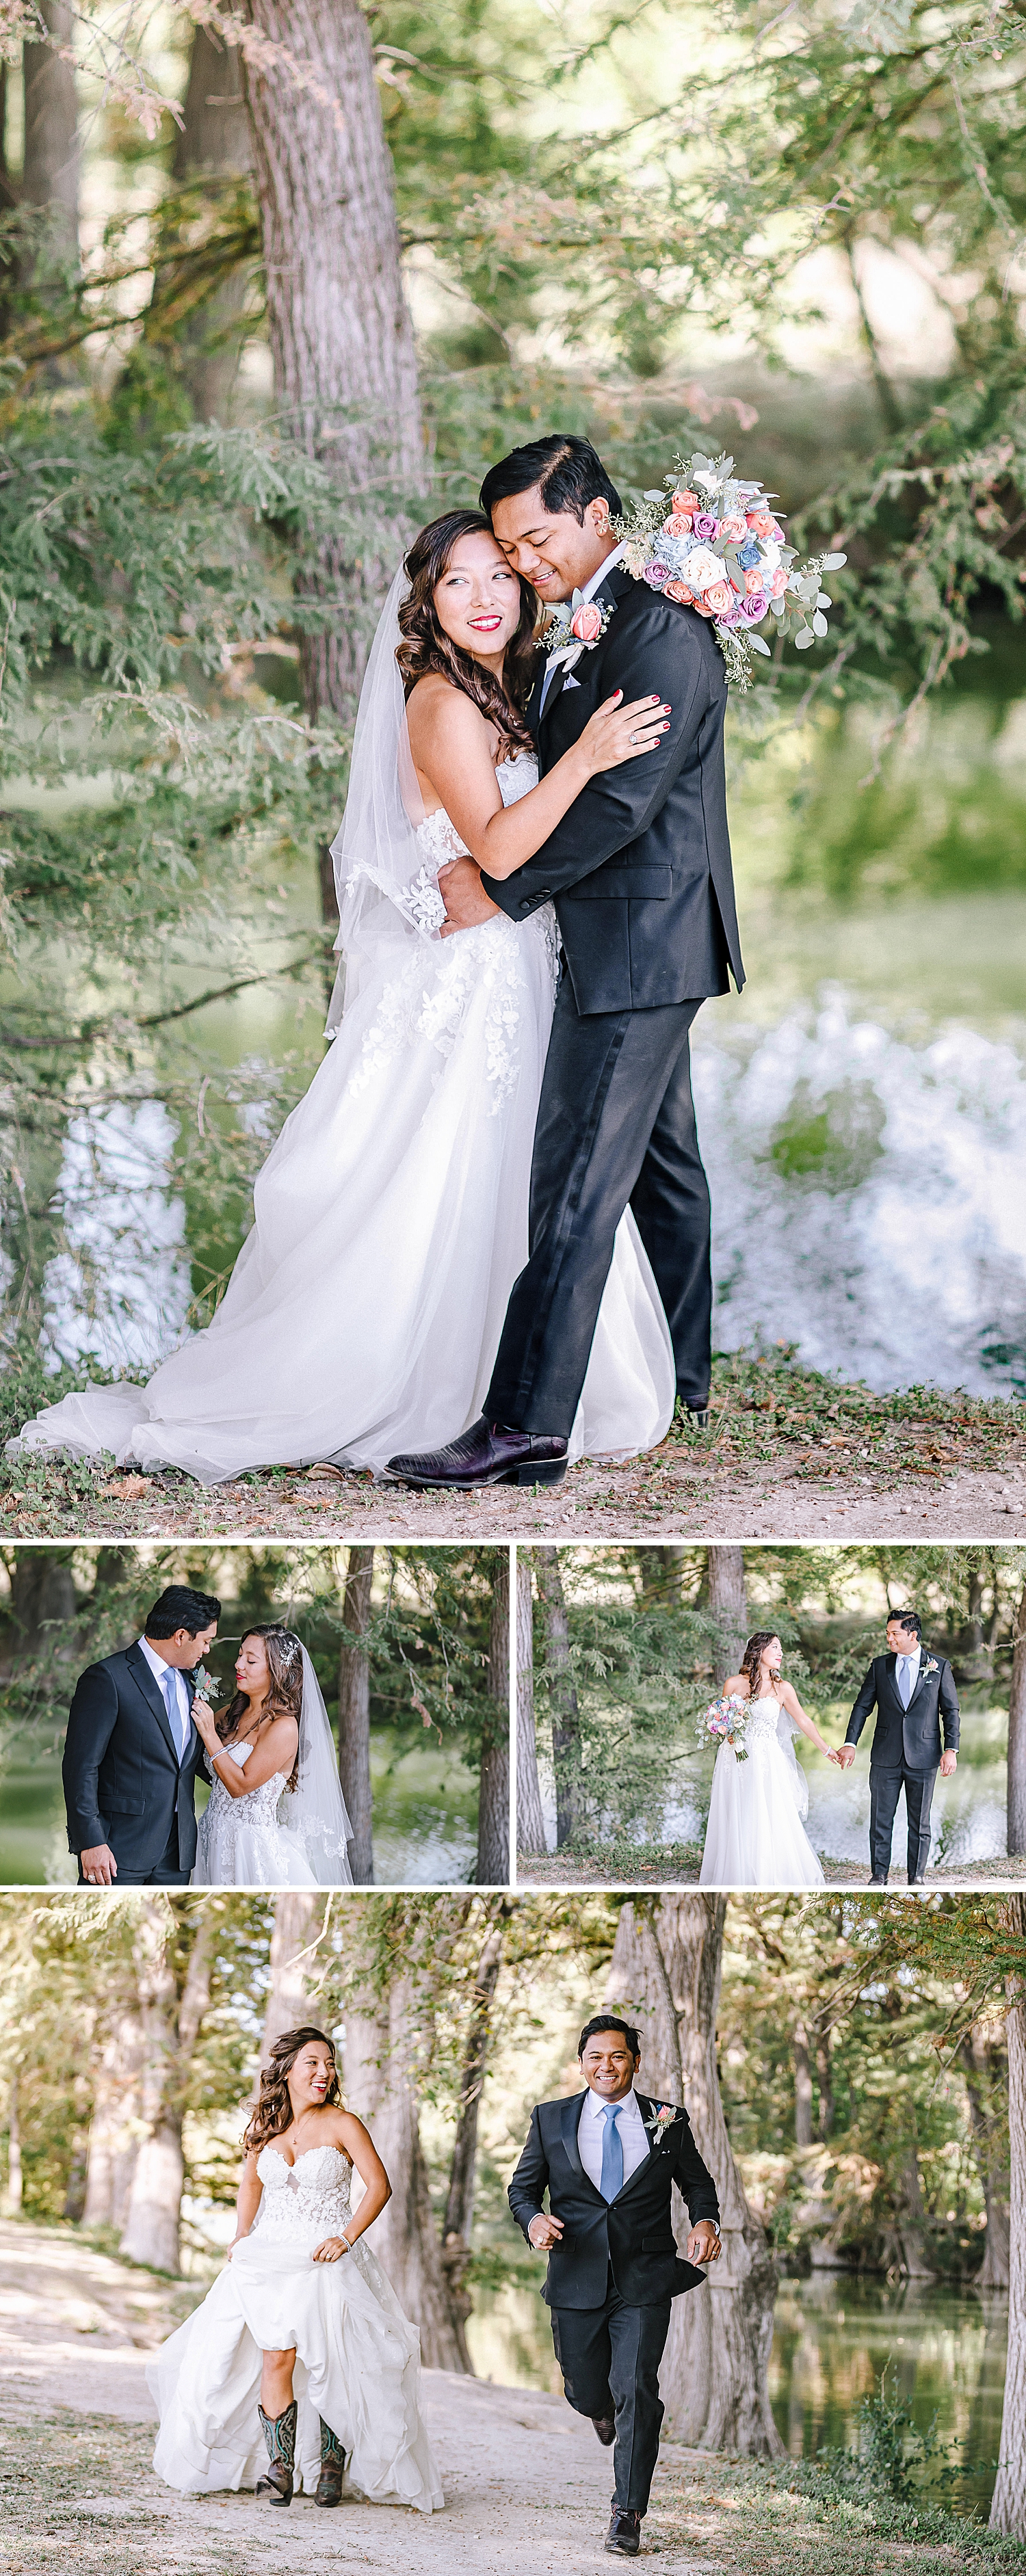 Bandera-Texas-Wedding-Photographer-Bride-Groom-on-Horses-Carly-Barton-Photography_0059.jpg